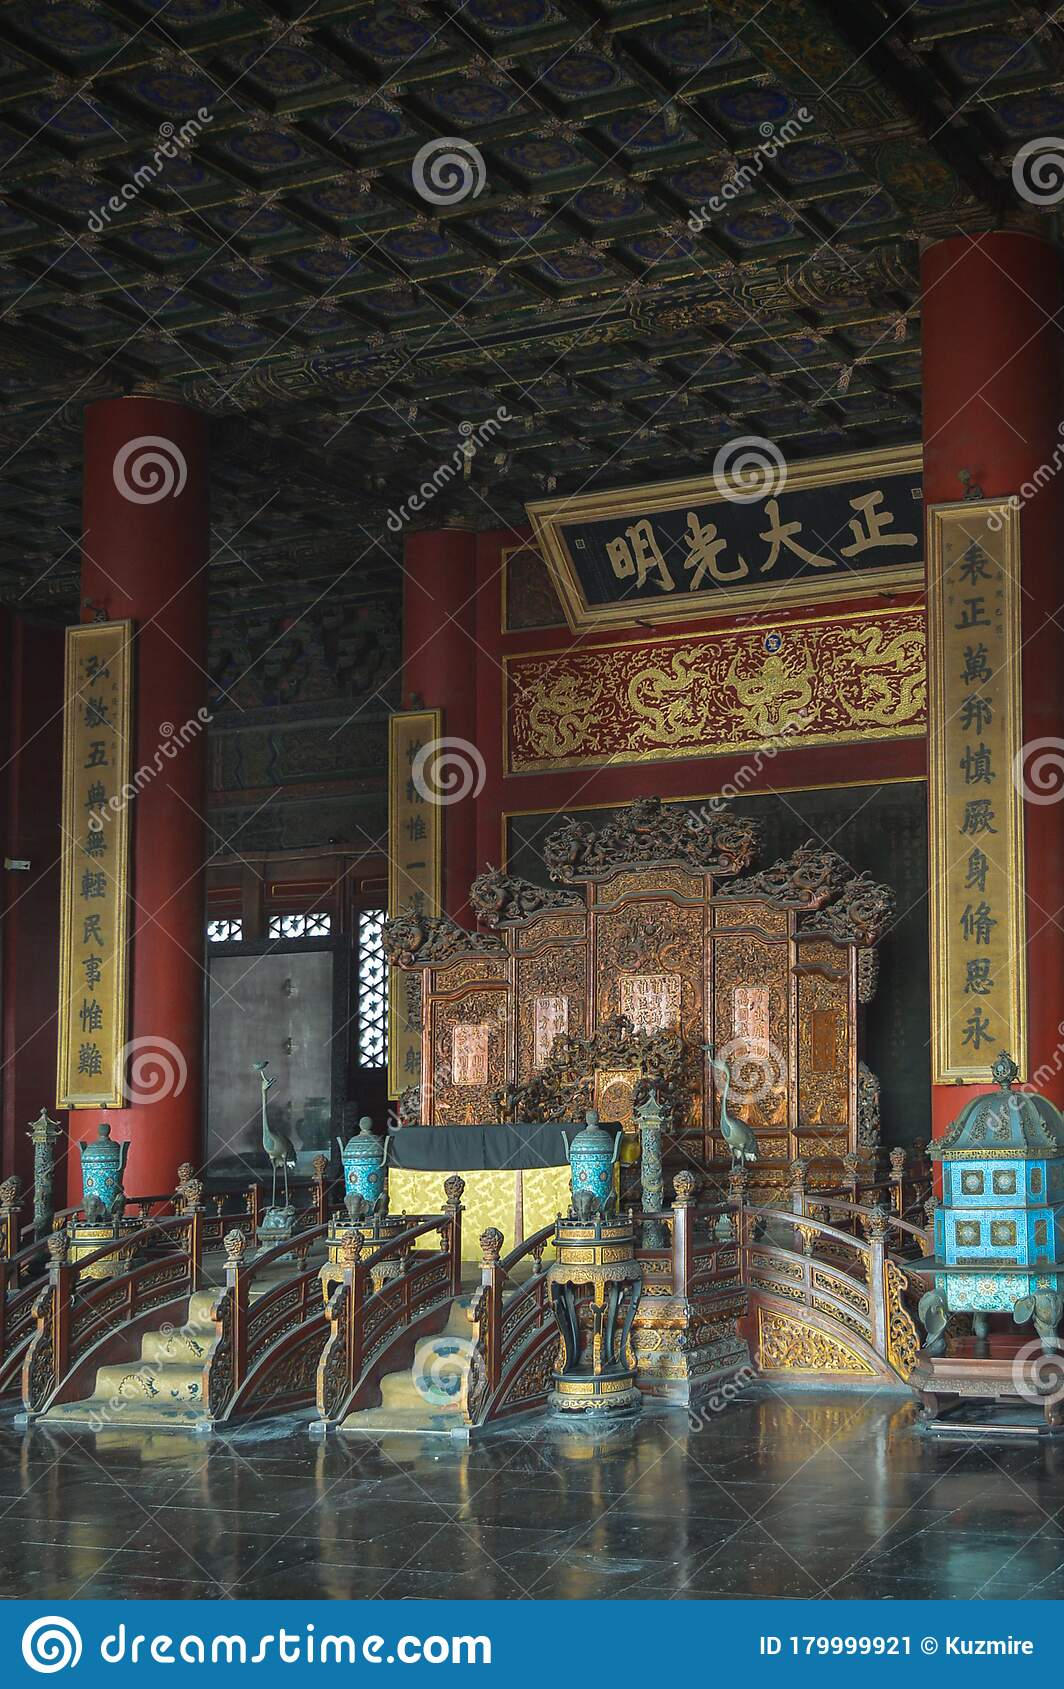 The Ceiling Of The Dragon In Gyeongbokgung Palace Stock